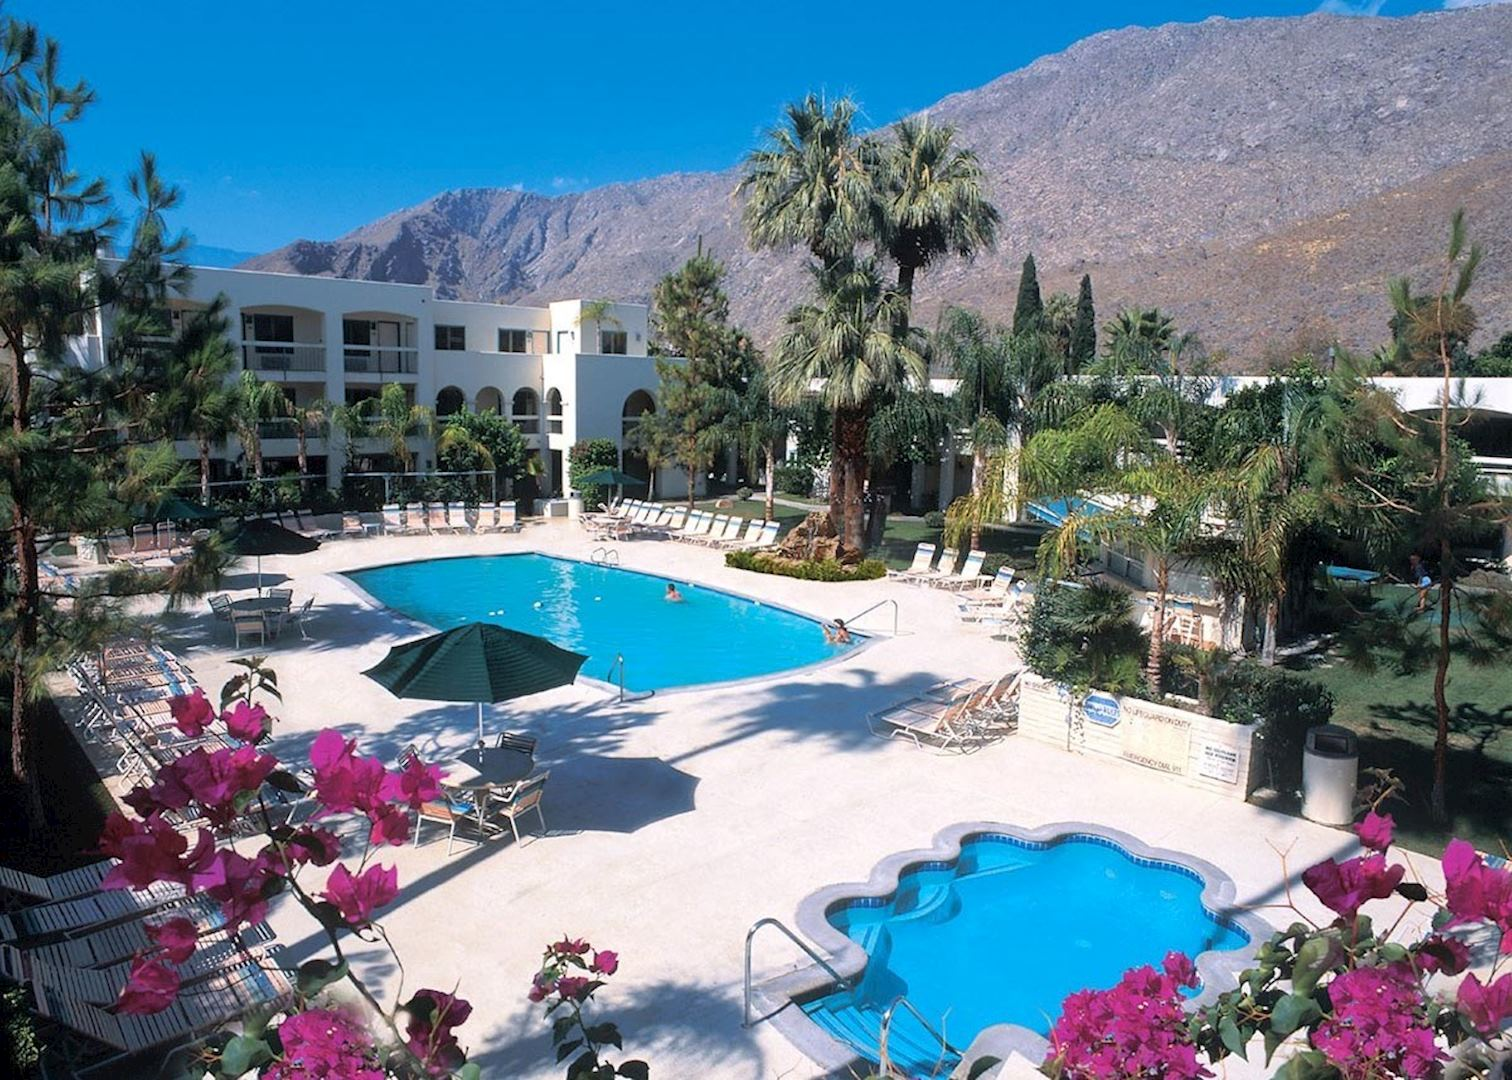 palm mountain resort | palm springs hotels | audley travel